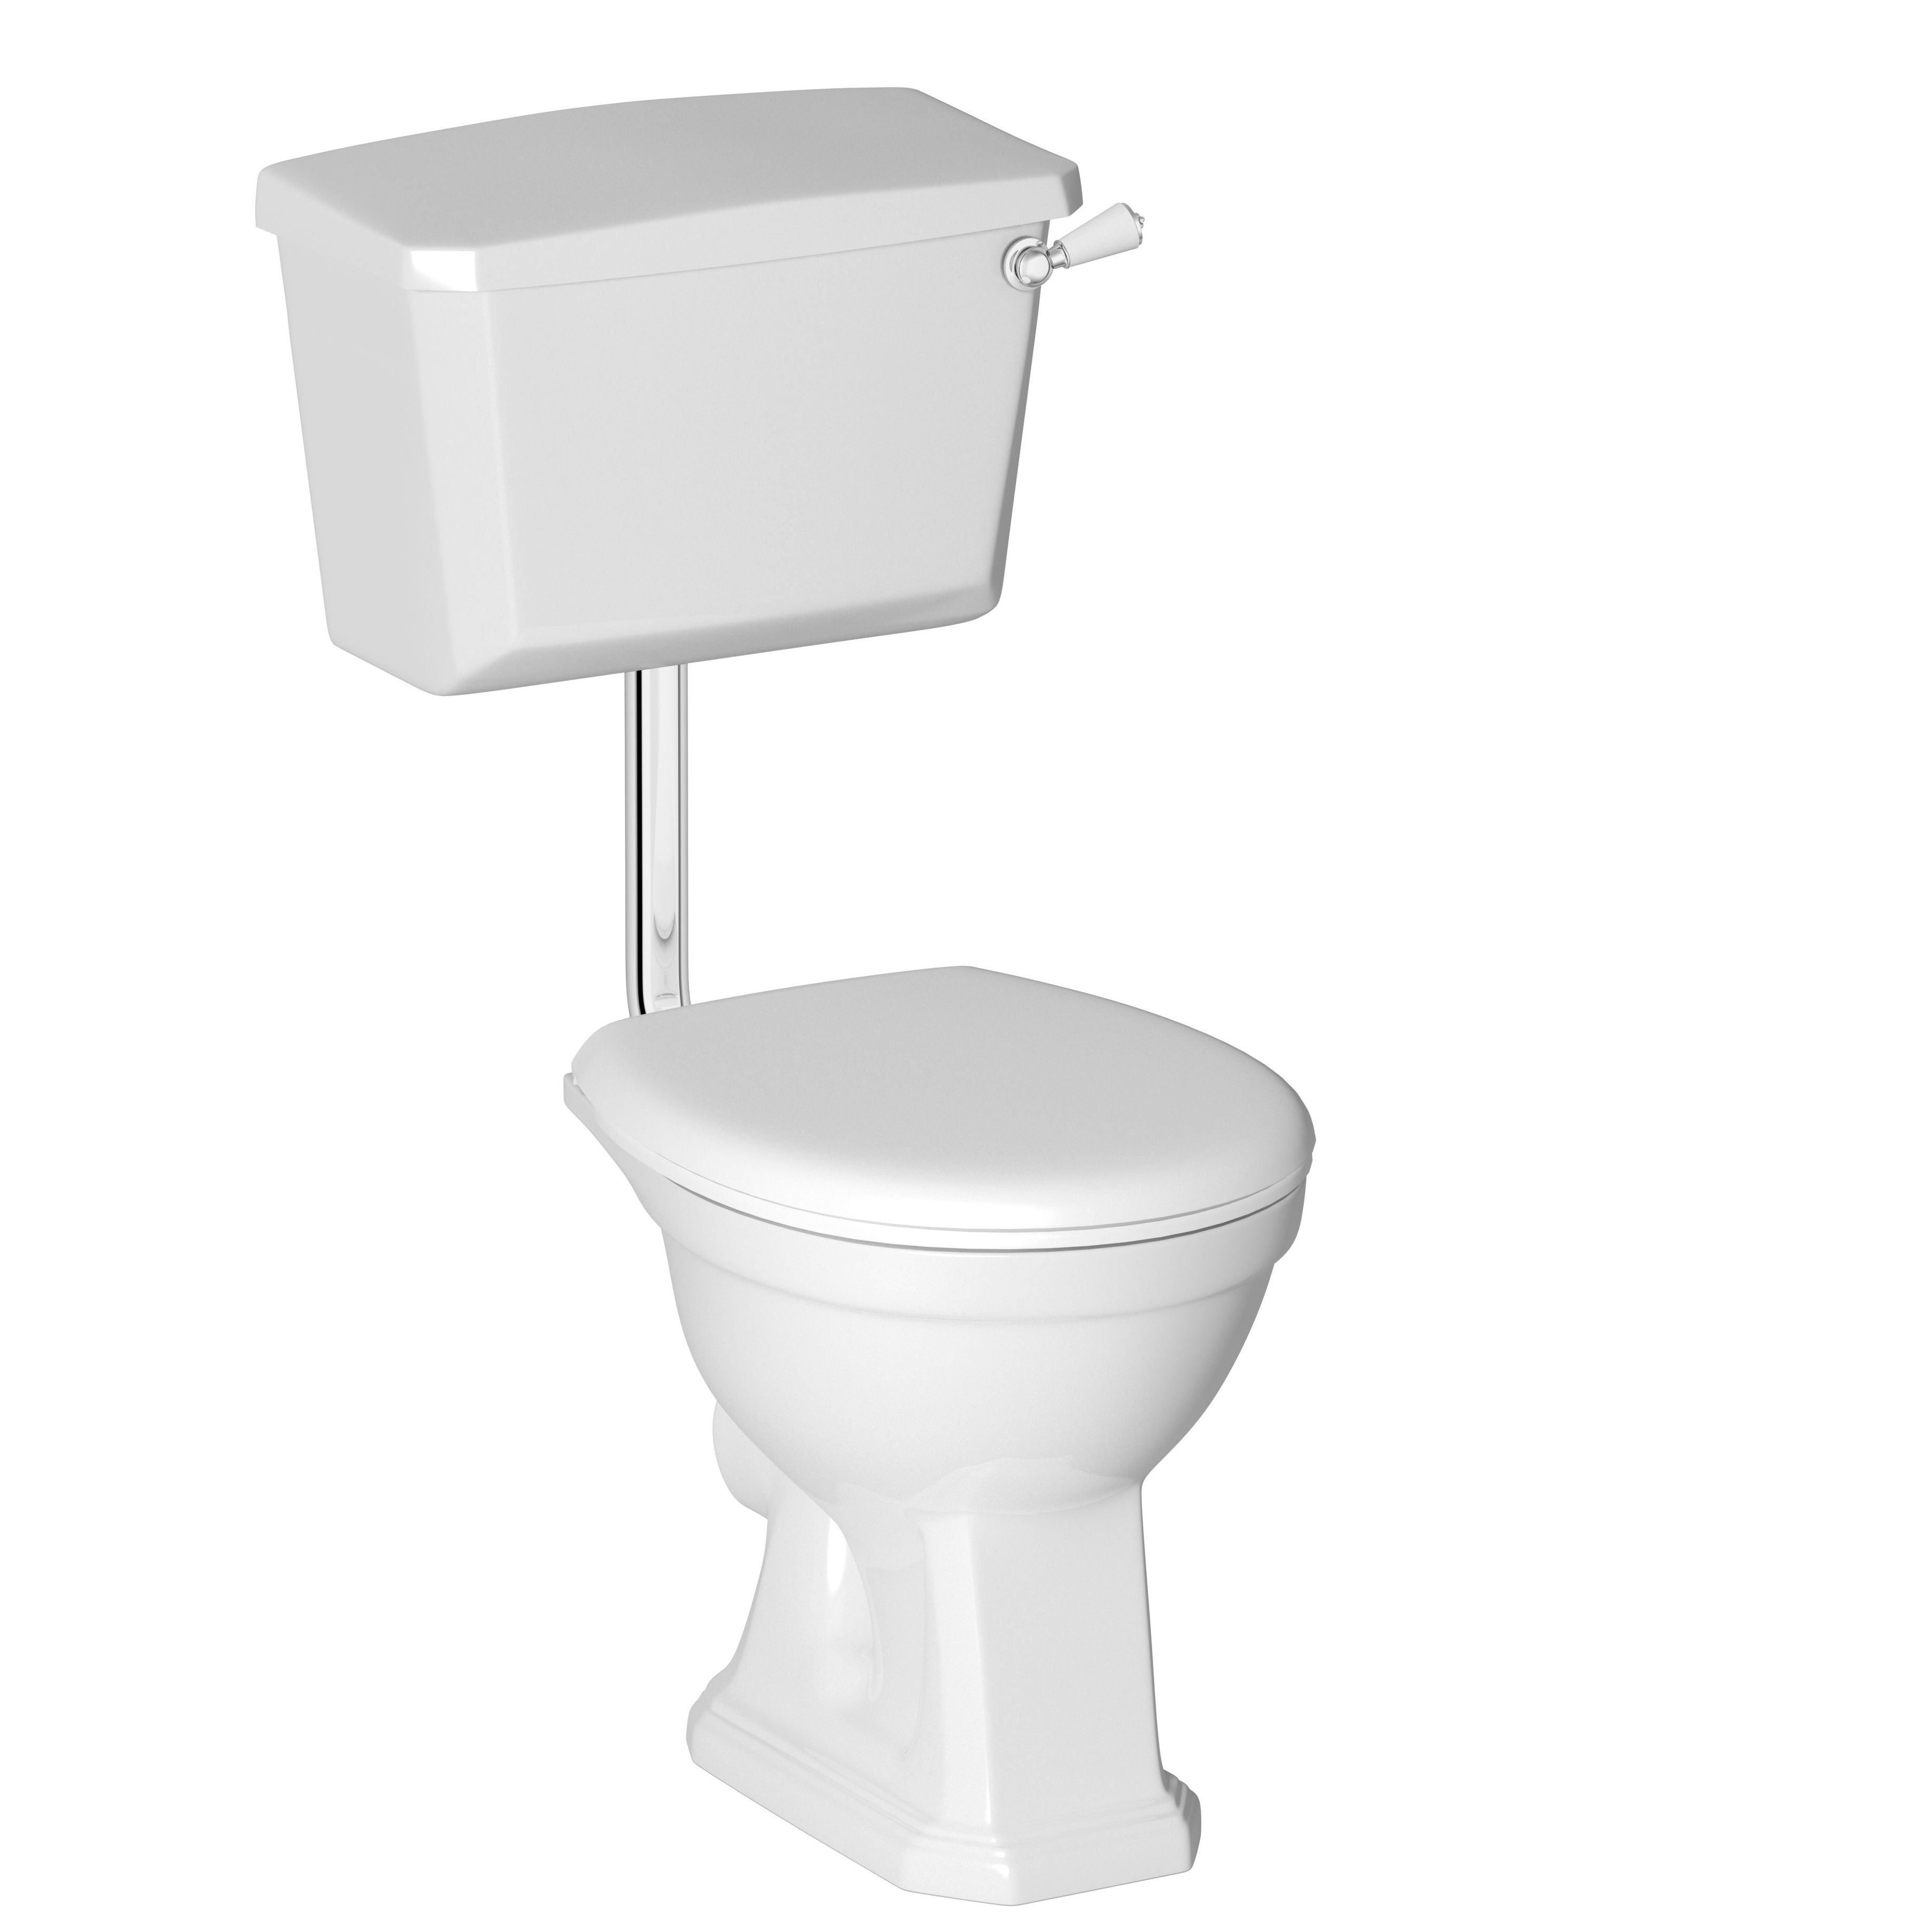 Toilets Stylish Close Coupled Back To Wall Amp More Diy